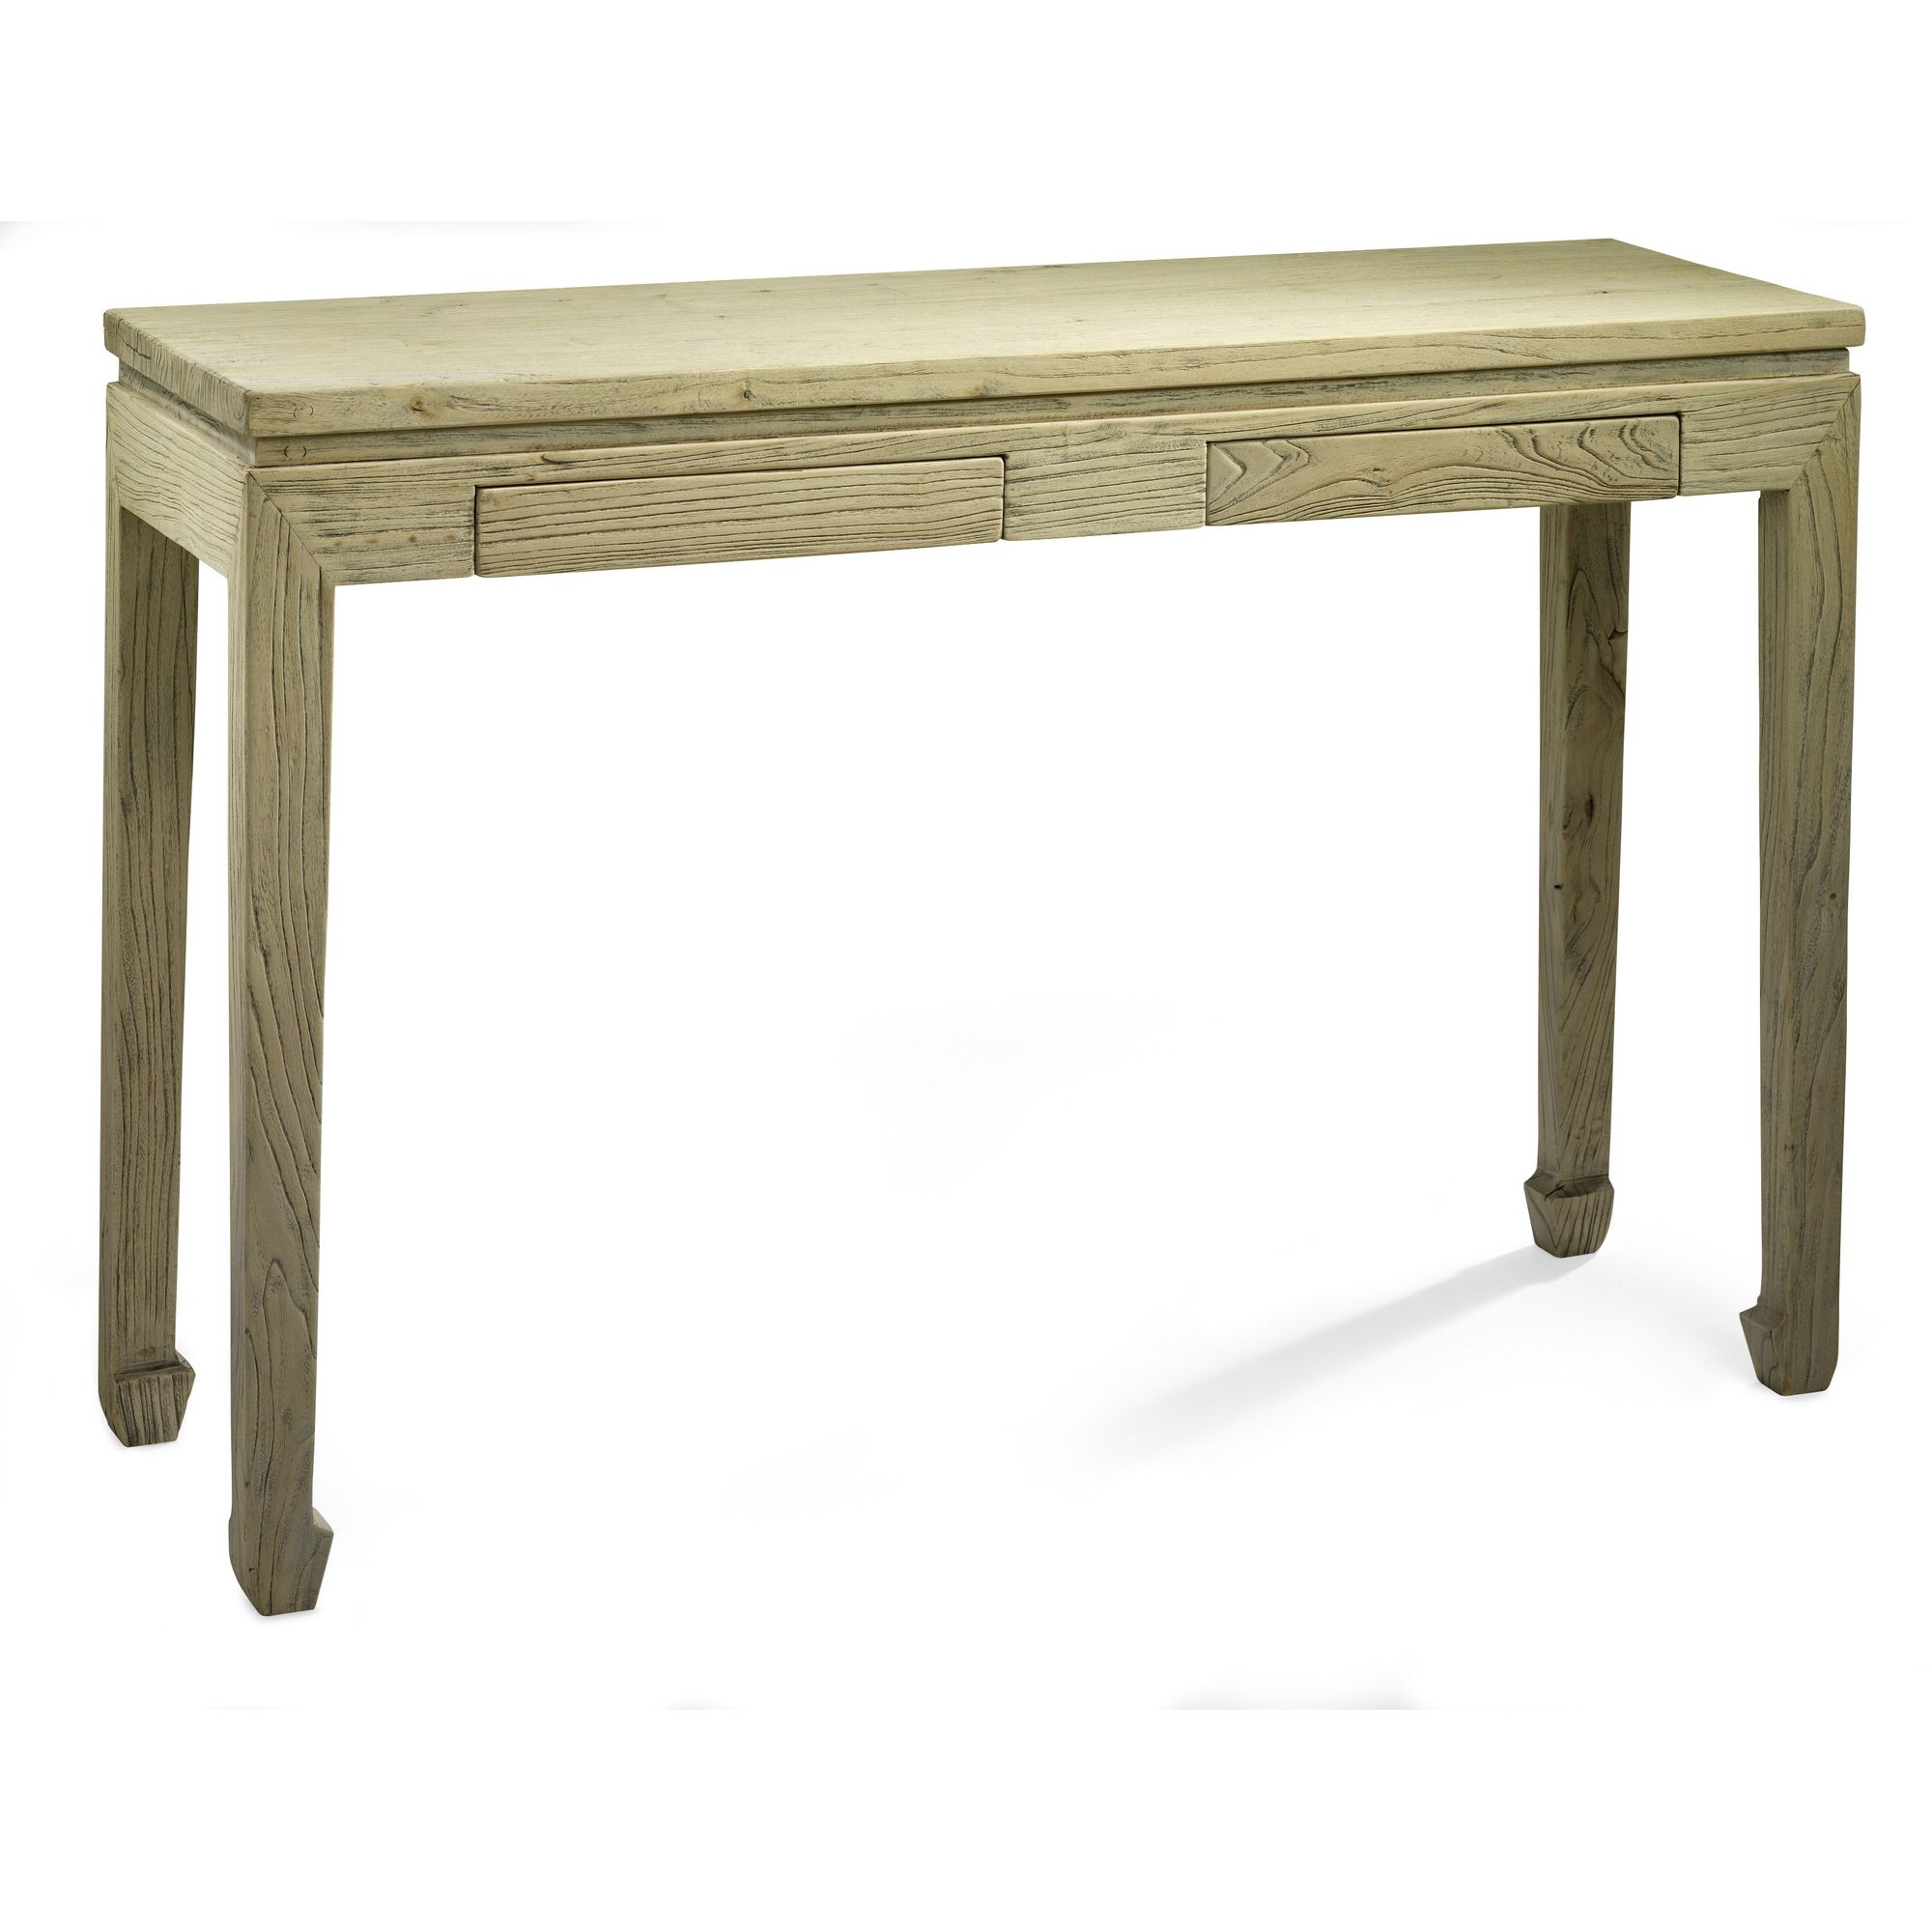 Shimu Chinese Country Furniture Two Drawer Console at Tesco Direct